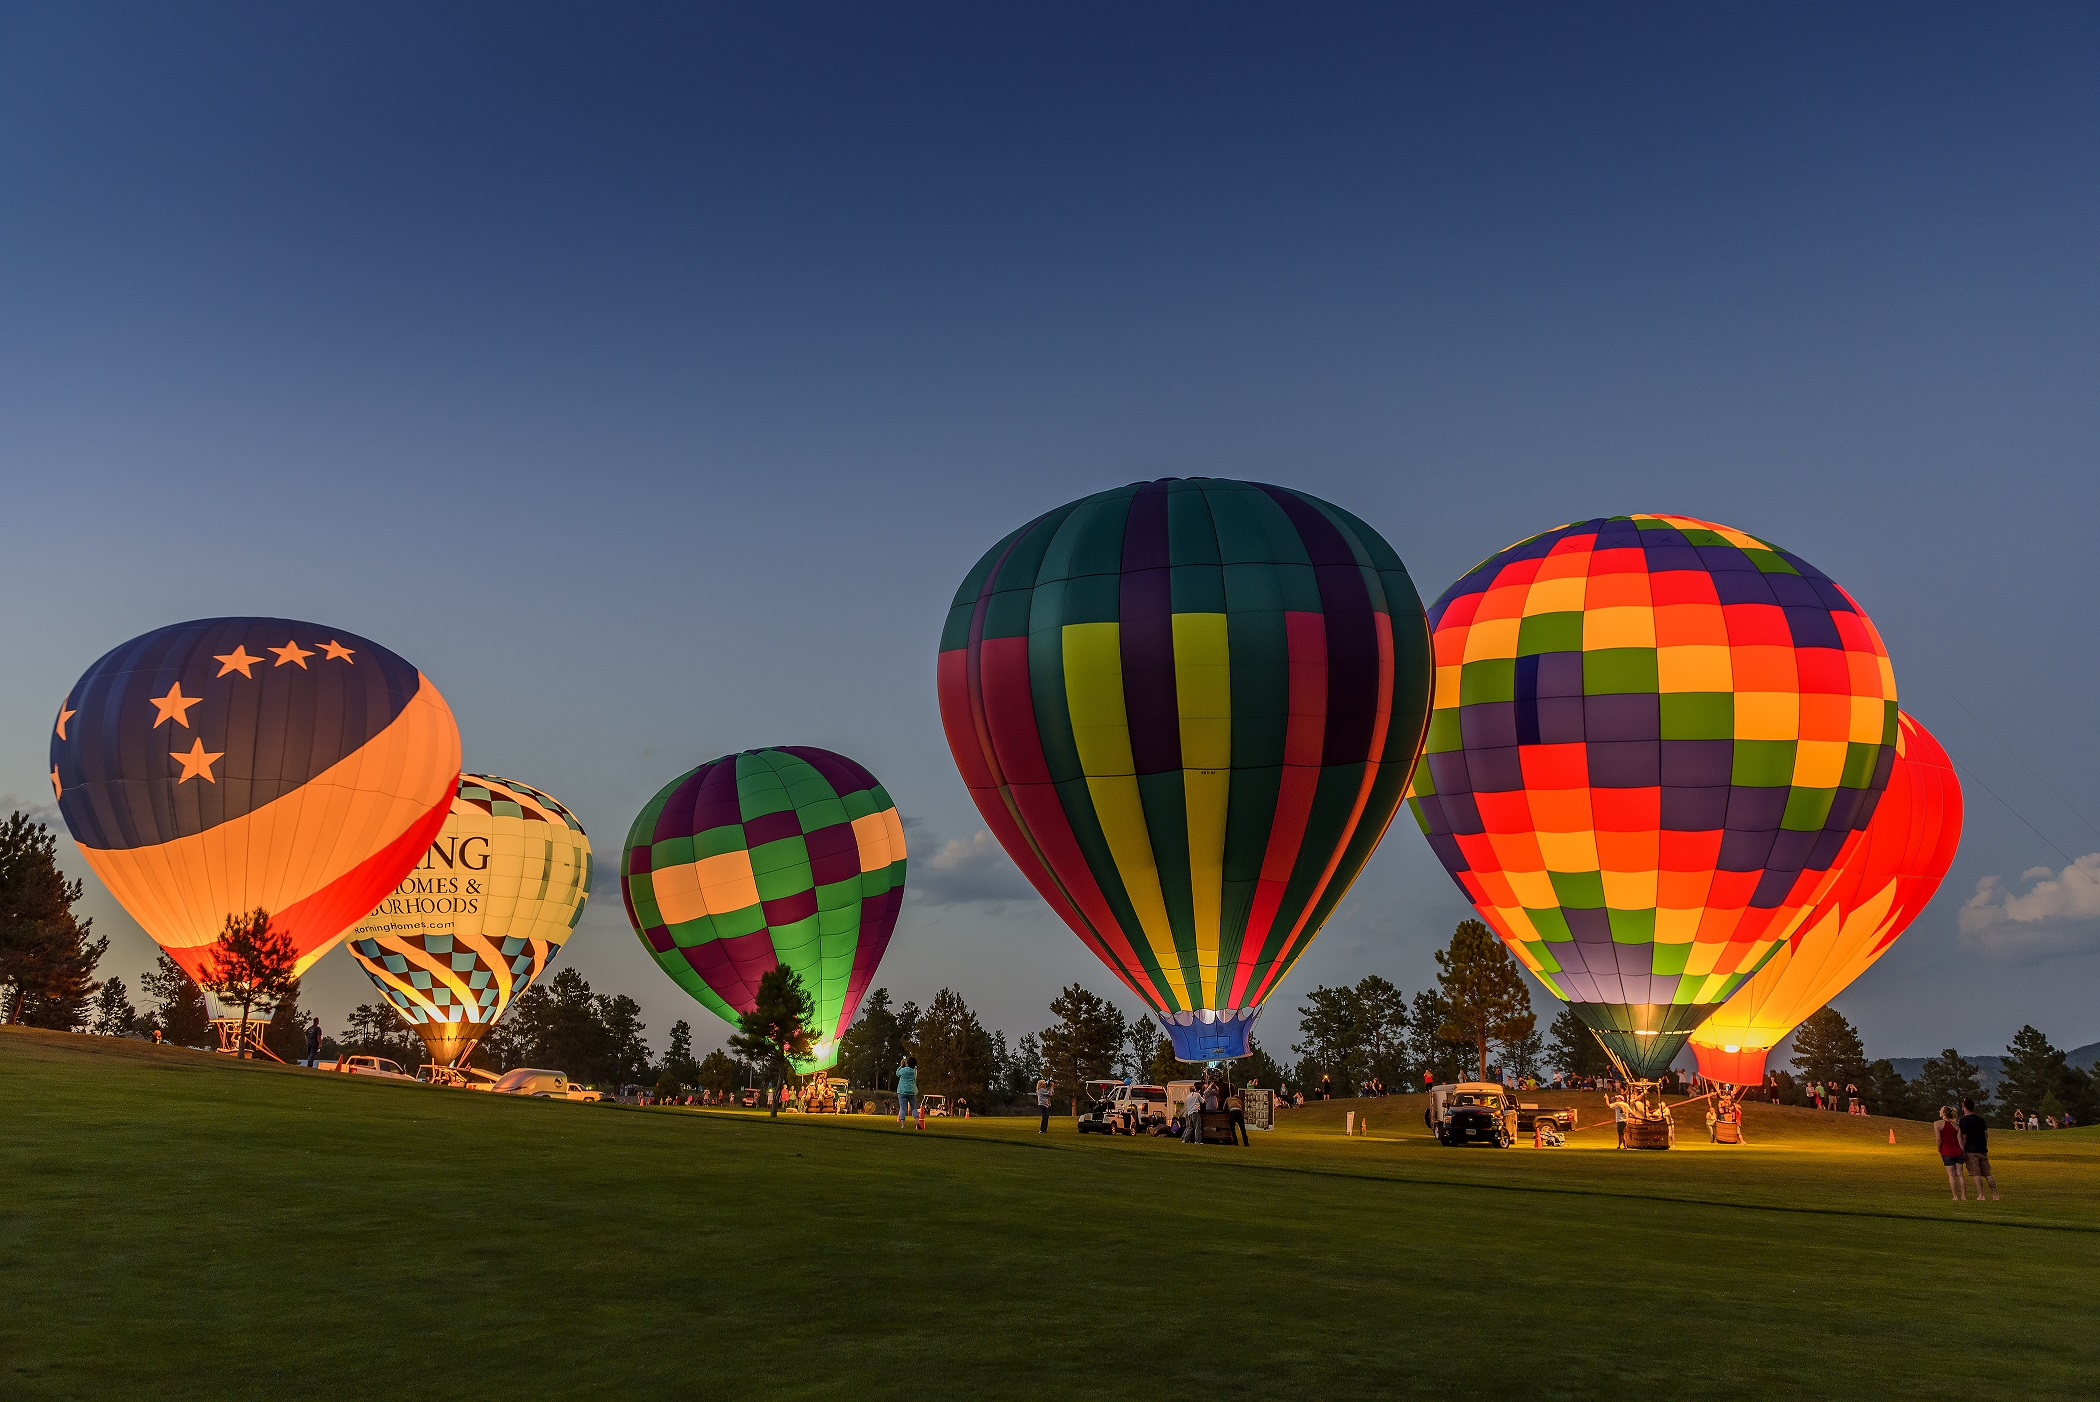 Fall River Balloon Festival